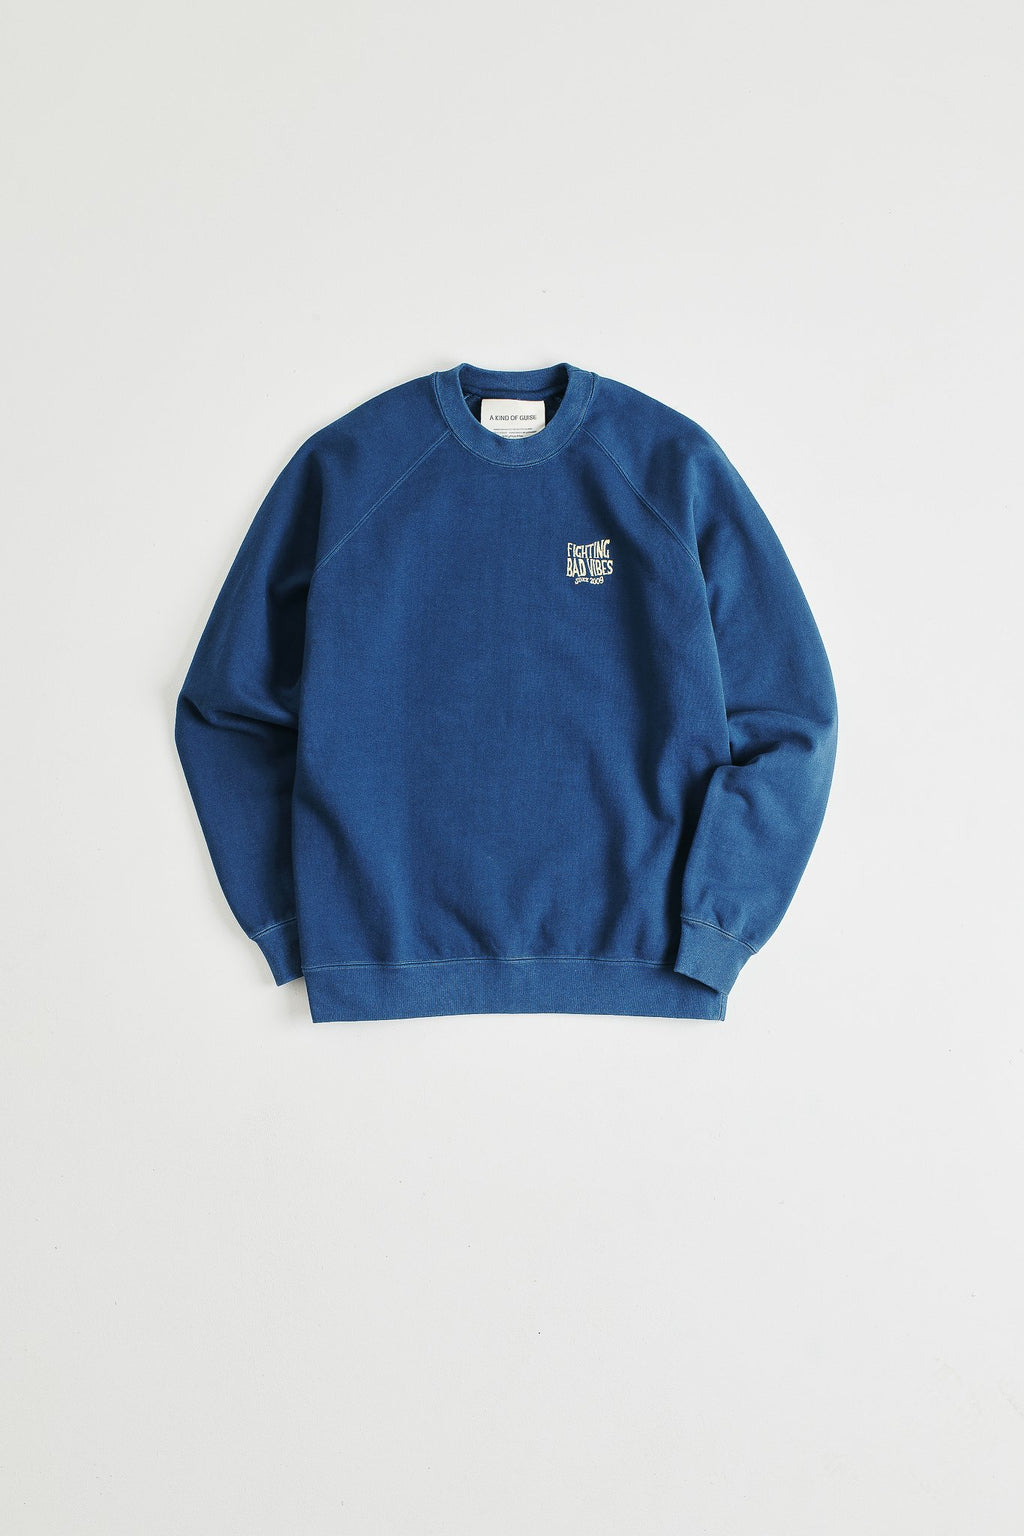 A Kind of Guise Mawu Crewneck, Ocean Blue